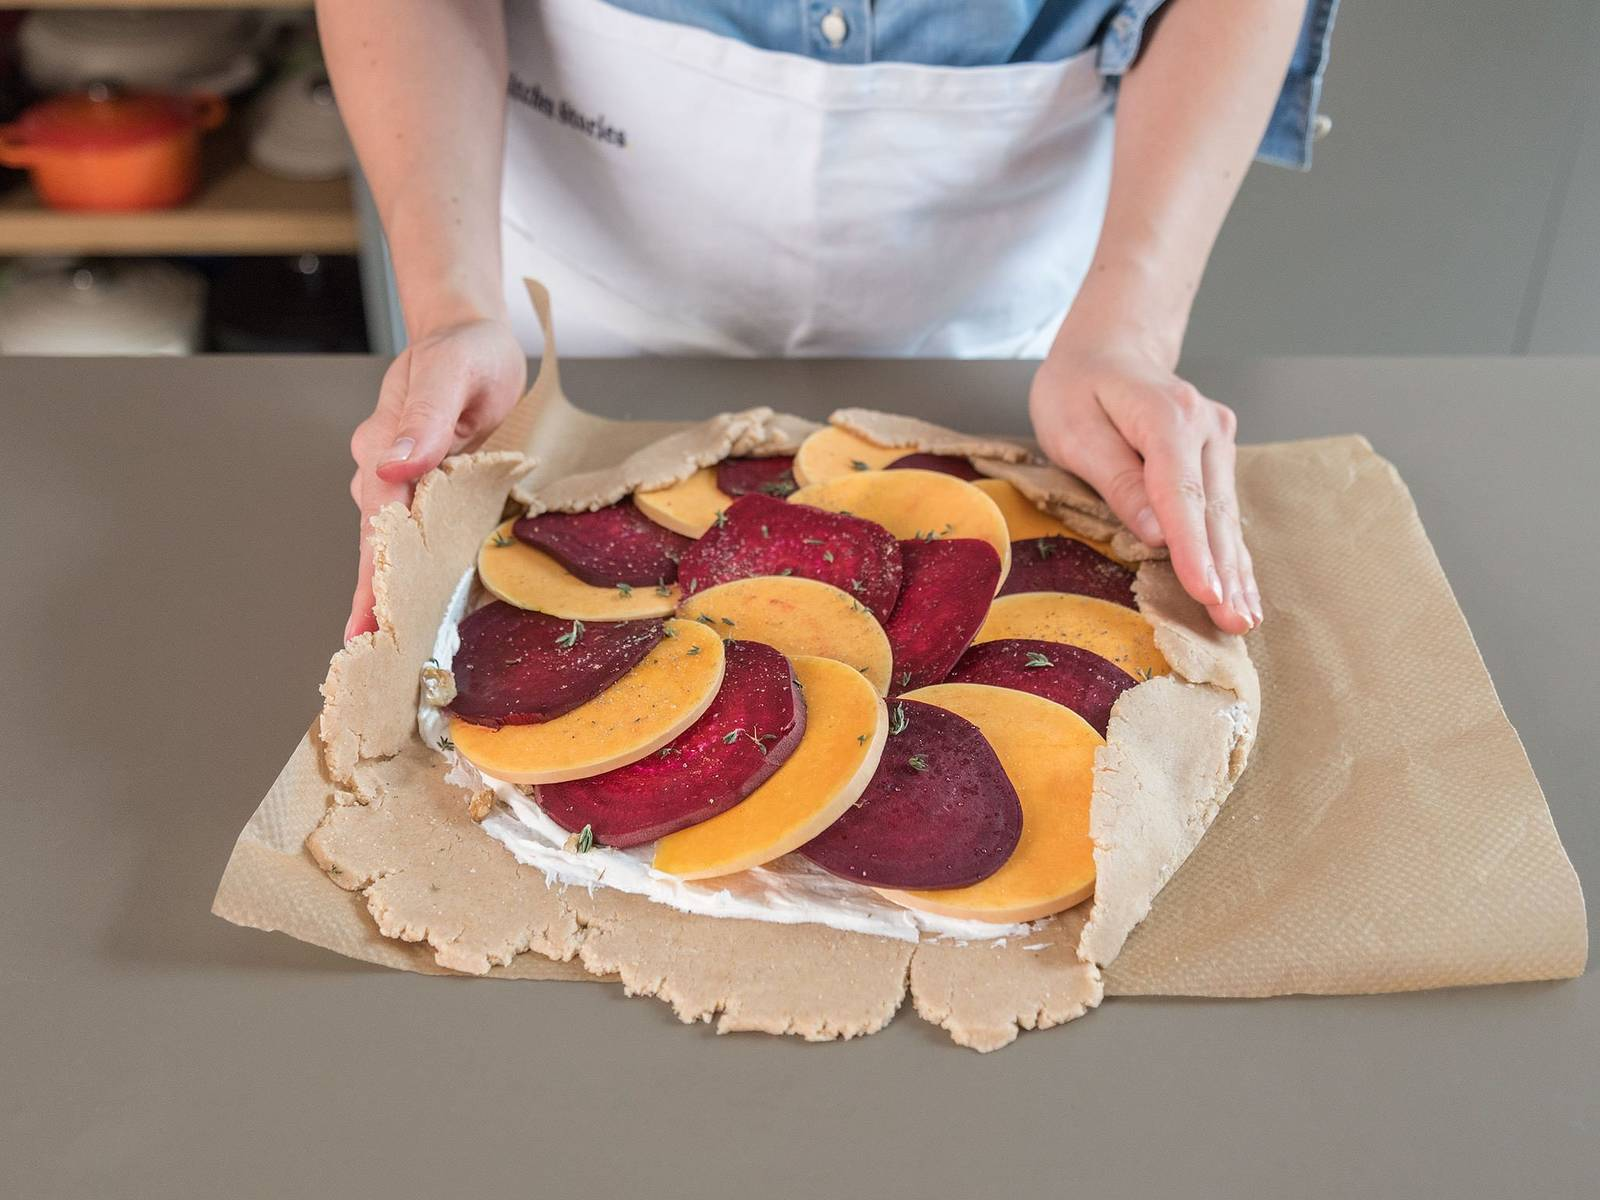 Pluck thyme leaves from stems and sprinkle half over the dough. Assemble the squash and beetroot slices over the goat cheese and sprinkle remaining thyme and salt and pepper over everything. Carefully fold over edges of dough.